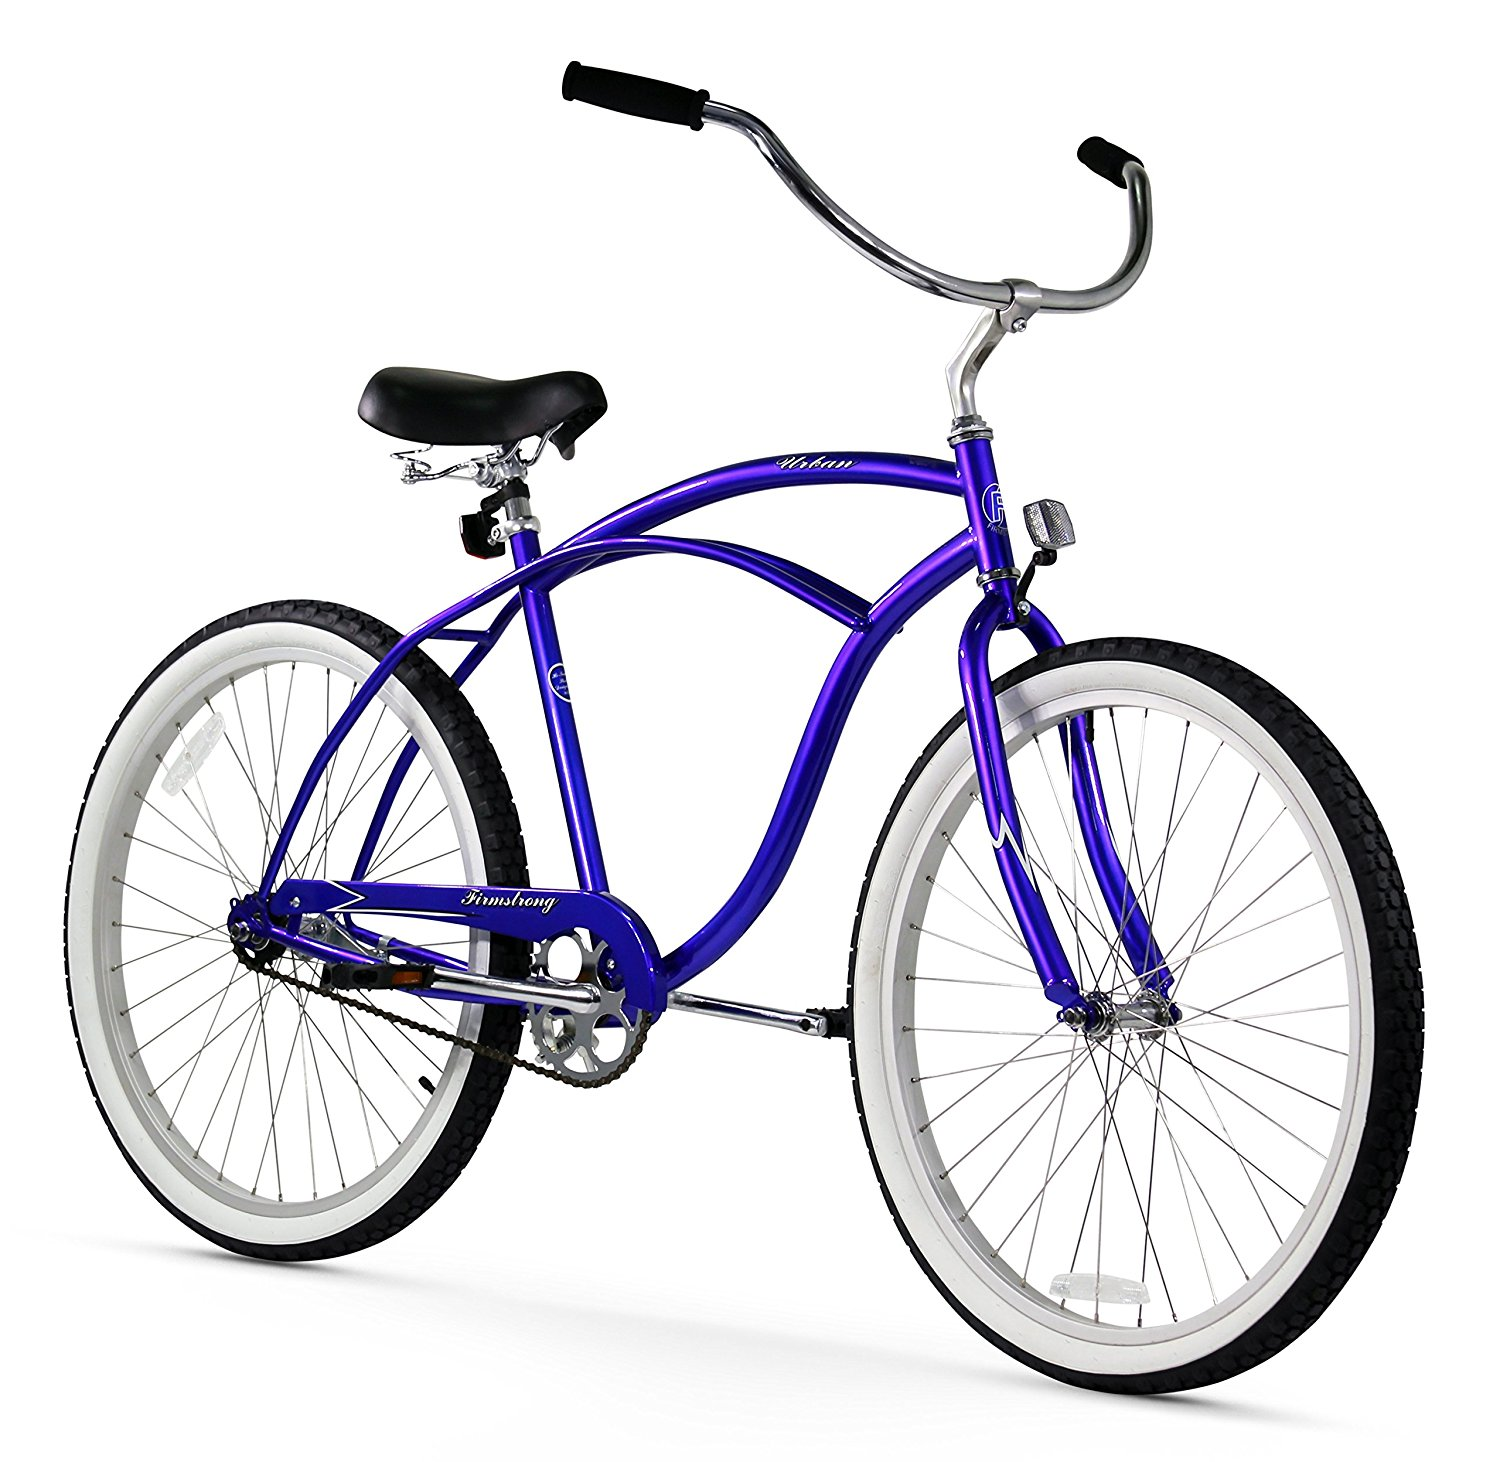 Enjoy a smooth, easy ride with the Urban cruiser bike. - $$